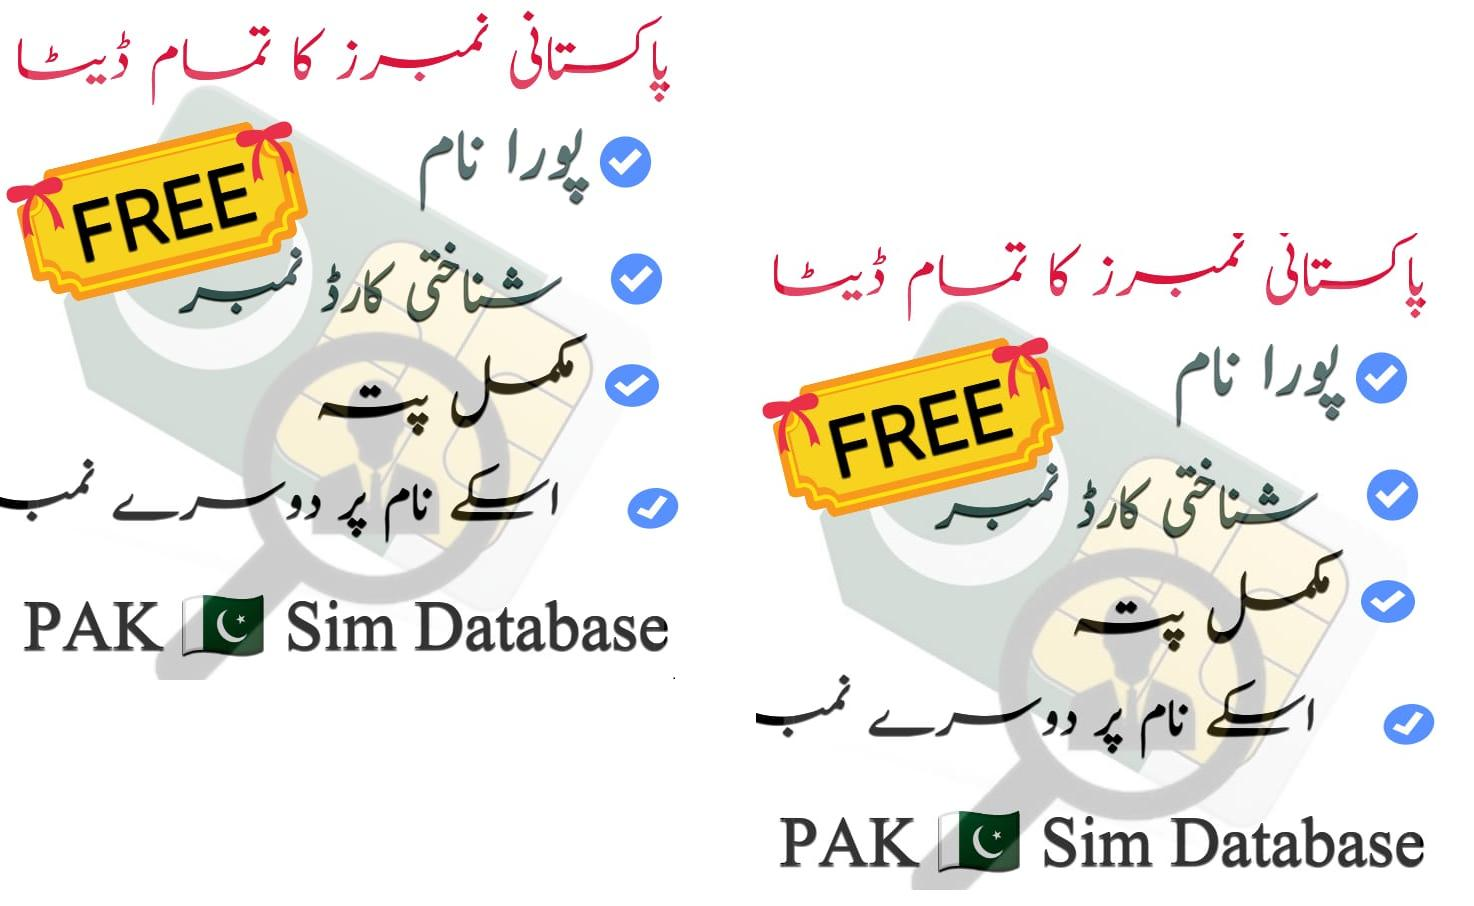 Pak Sim Free Database for Android - APK Download